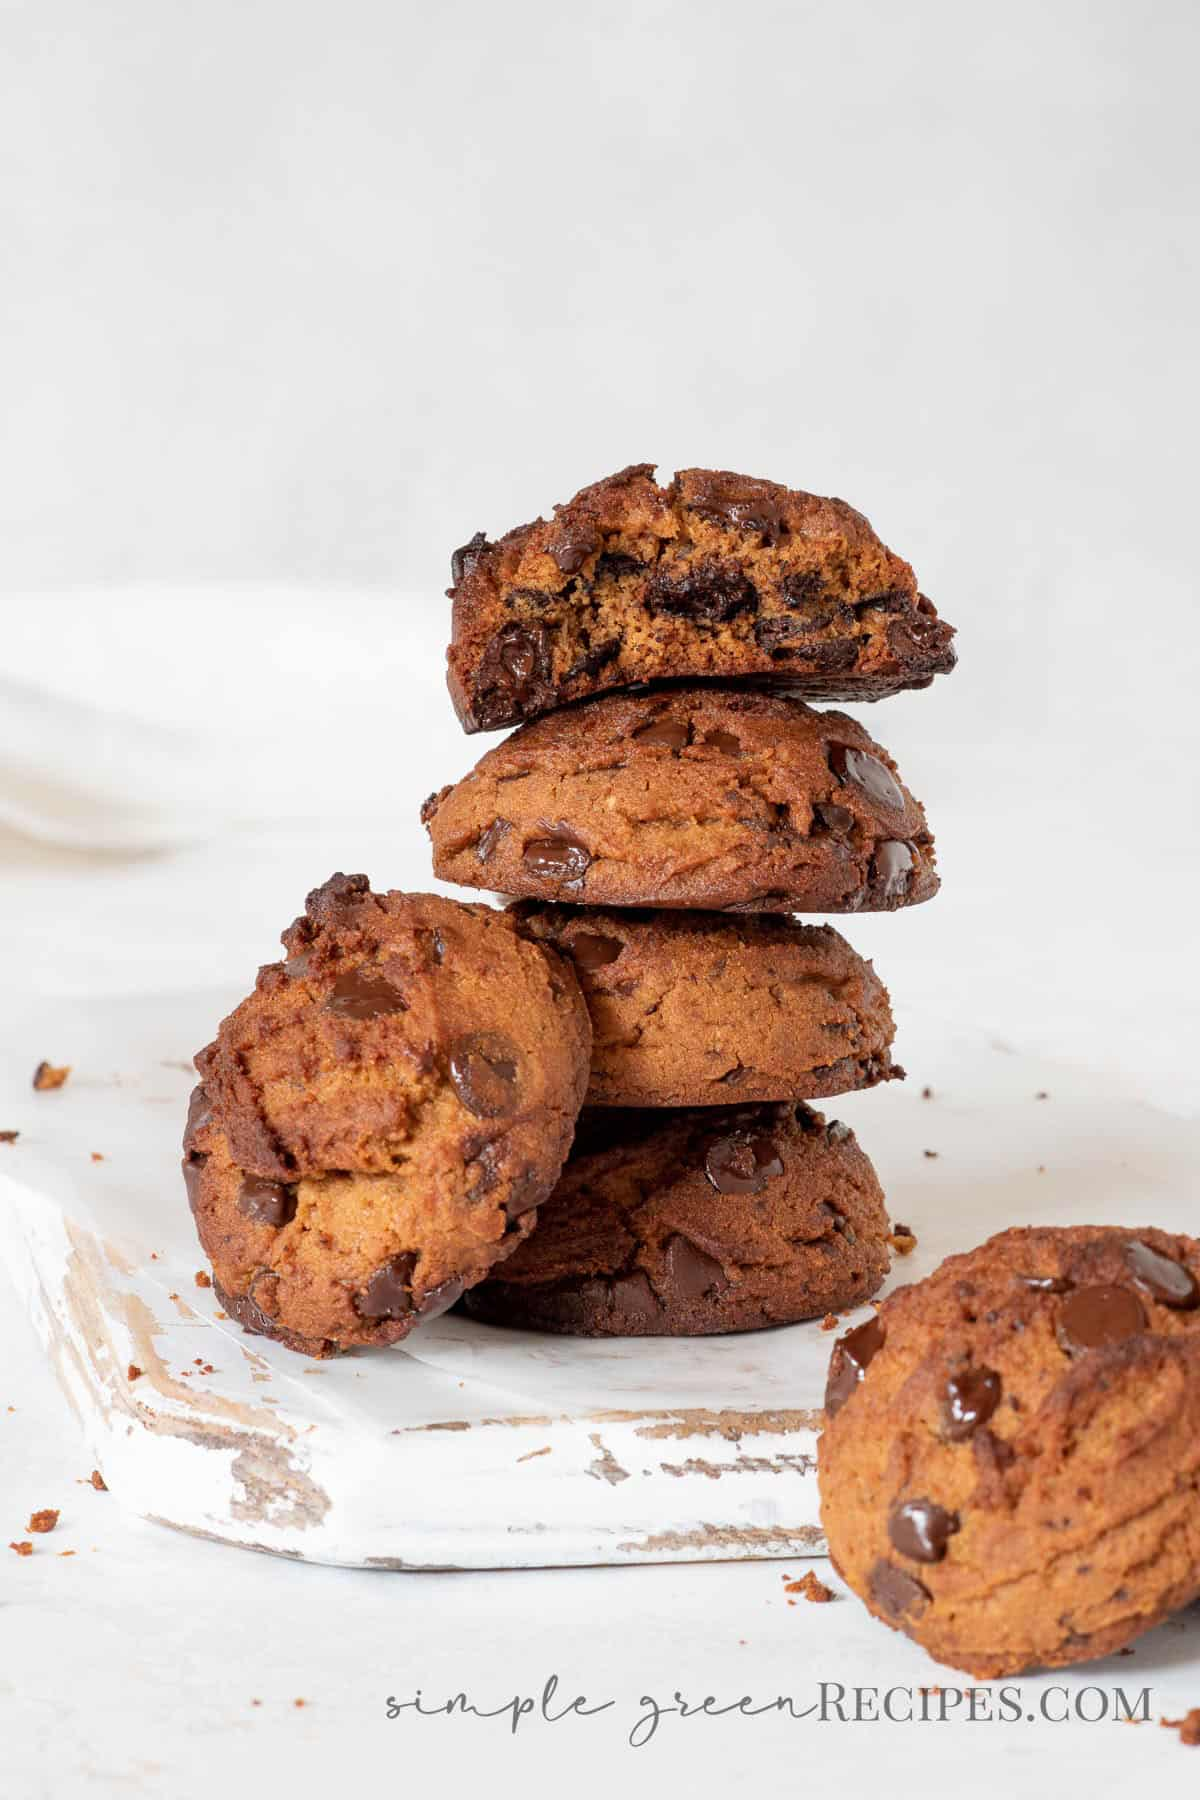 stack of peanut butter cookies with chocolate chips, on a white wooden cutting board